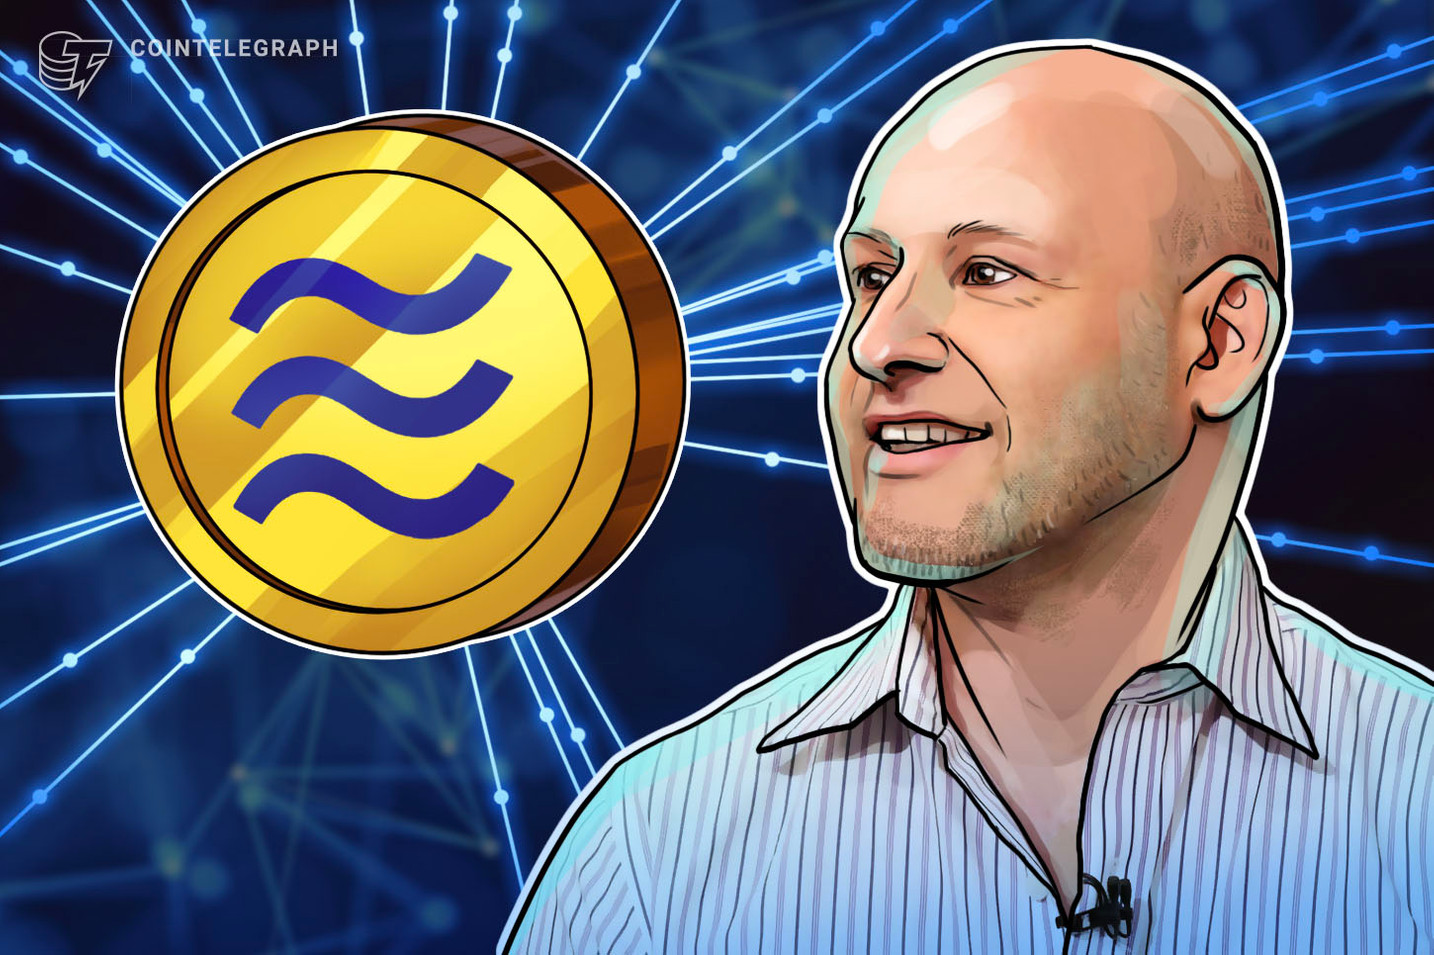 Ethereum Co-Founder Criticizes Facebook's Libra Token for Centralization